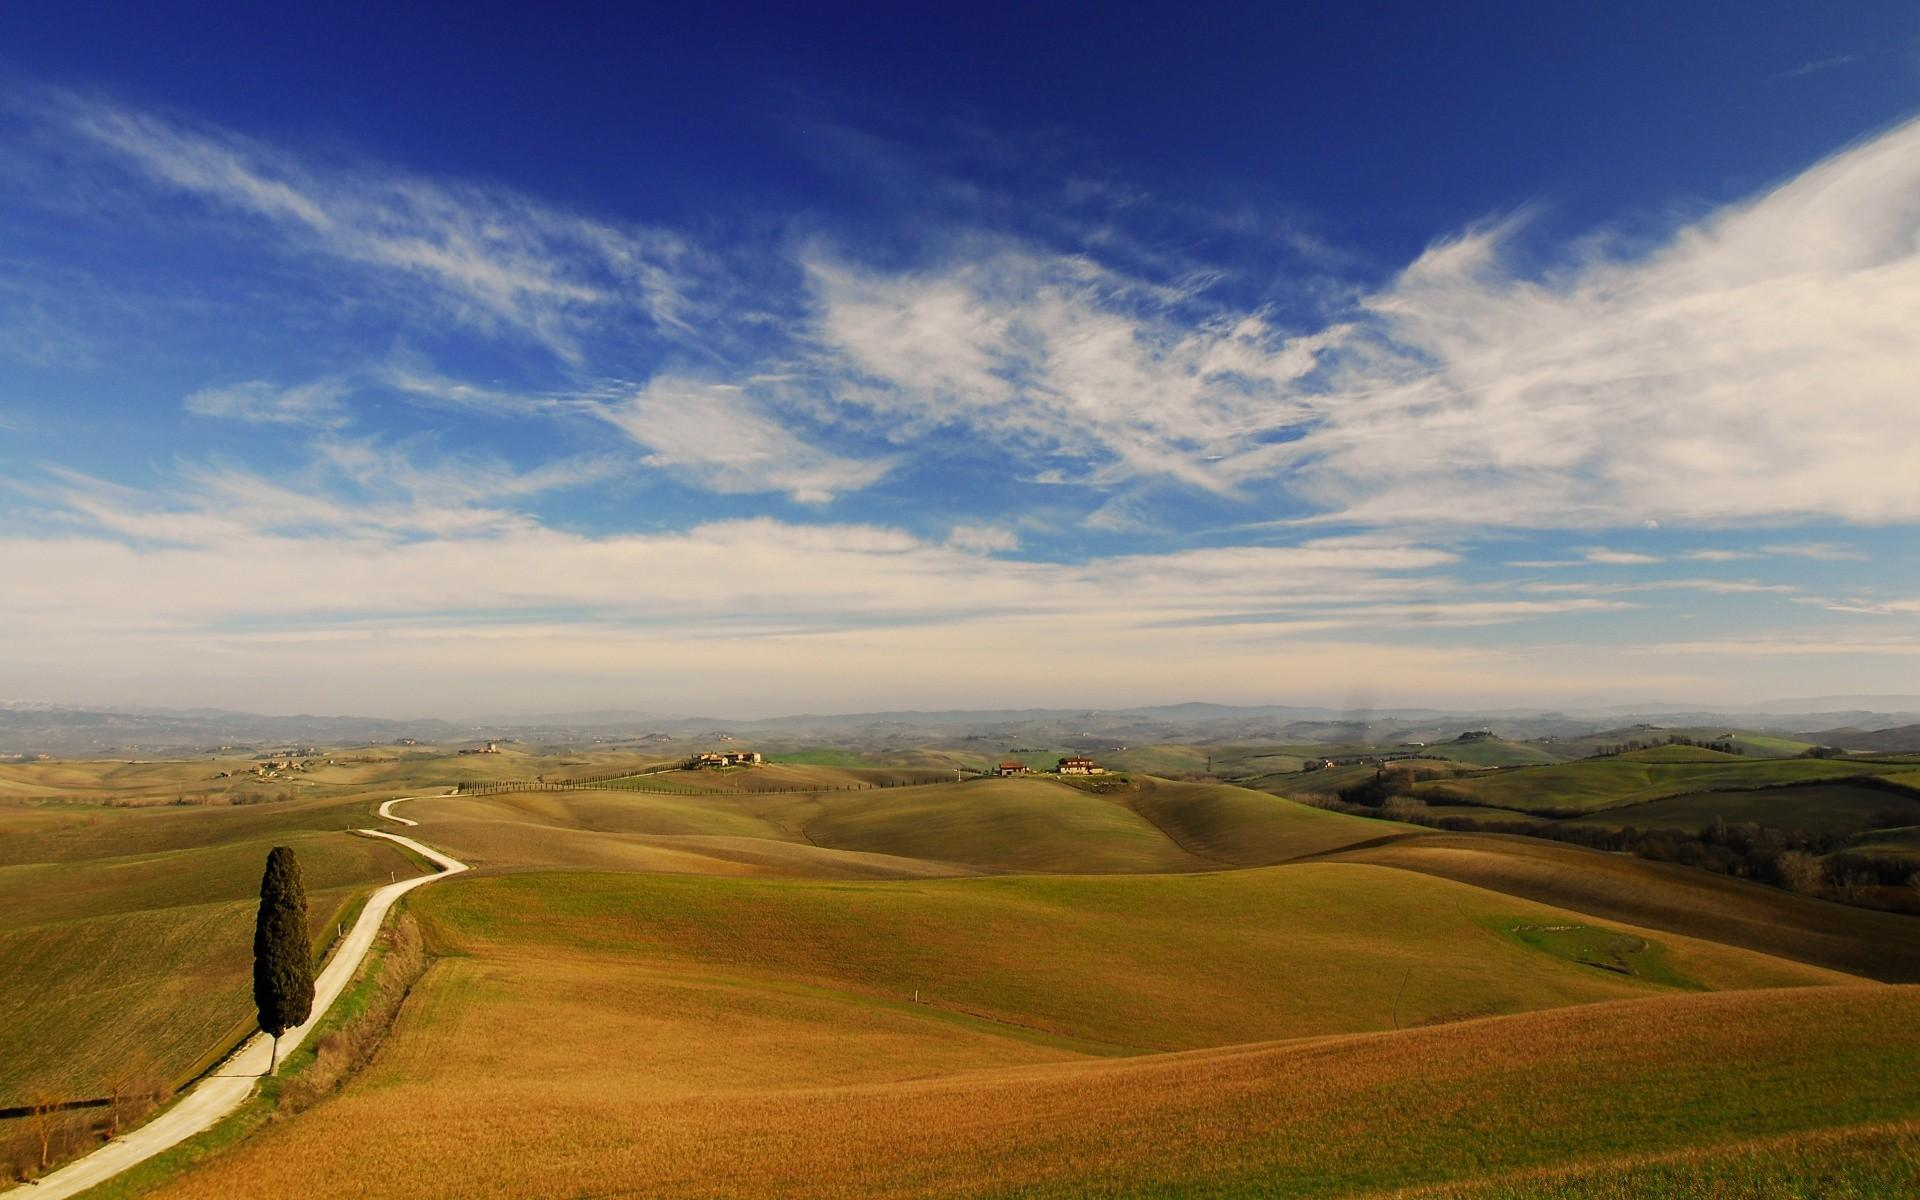 Tuscany Landscape. Desktop wallpapers for free